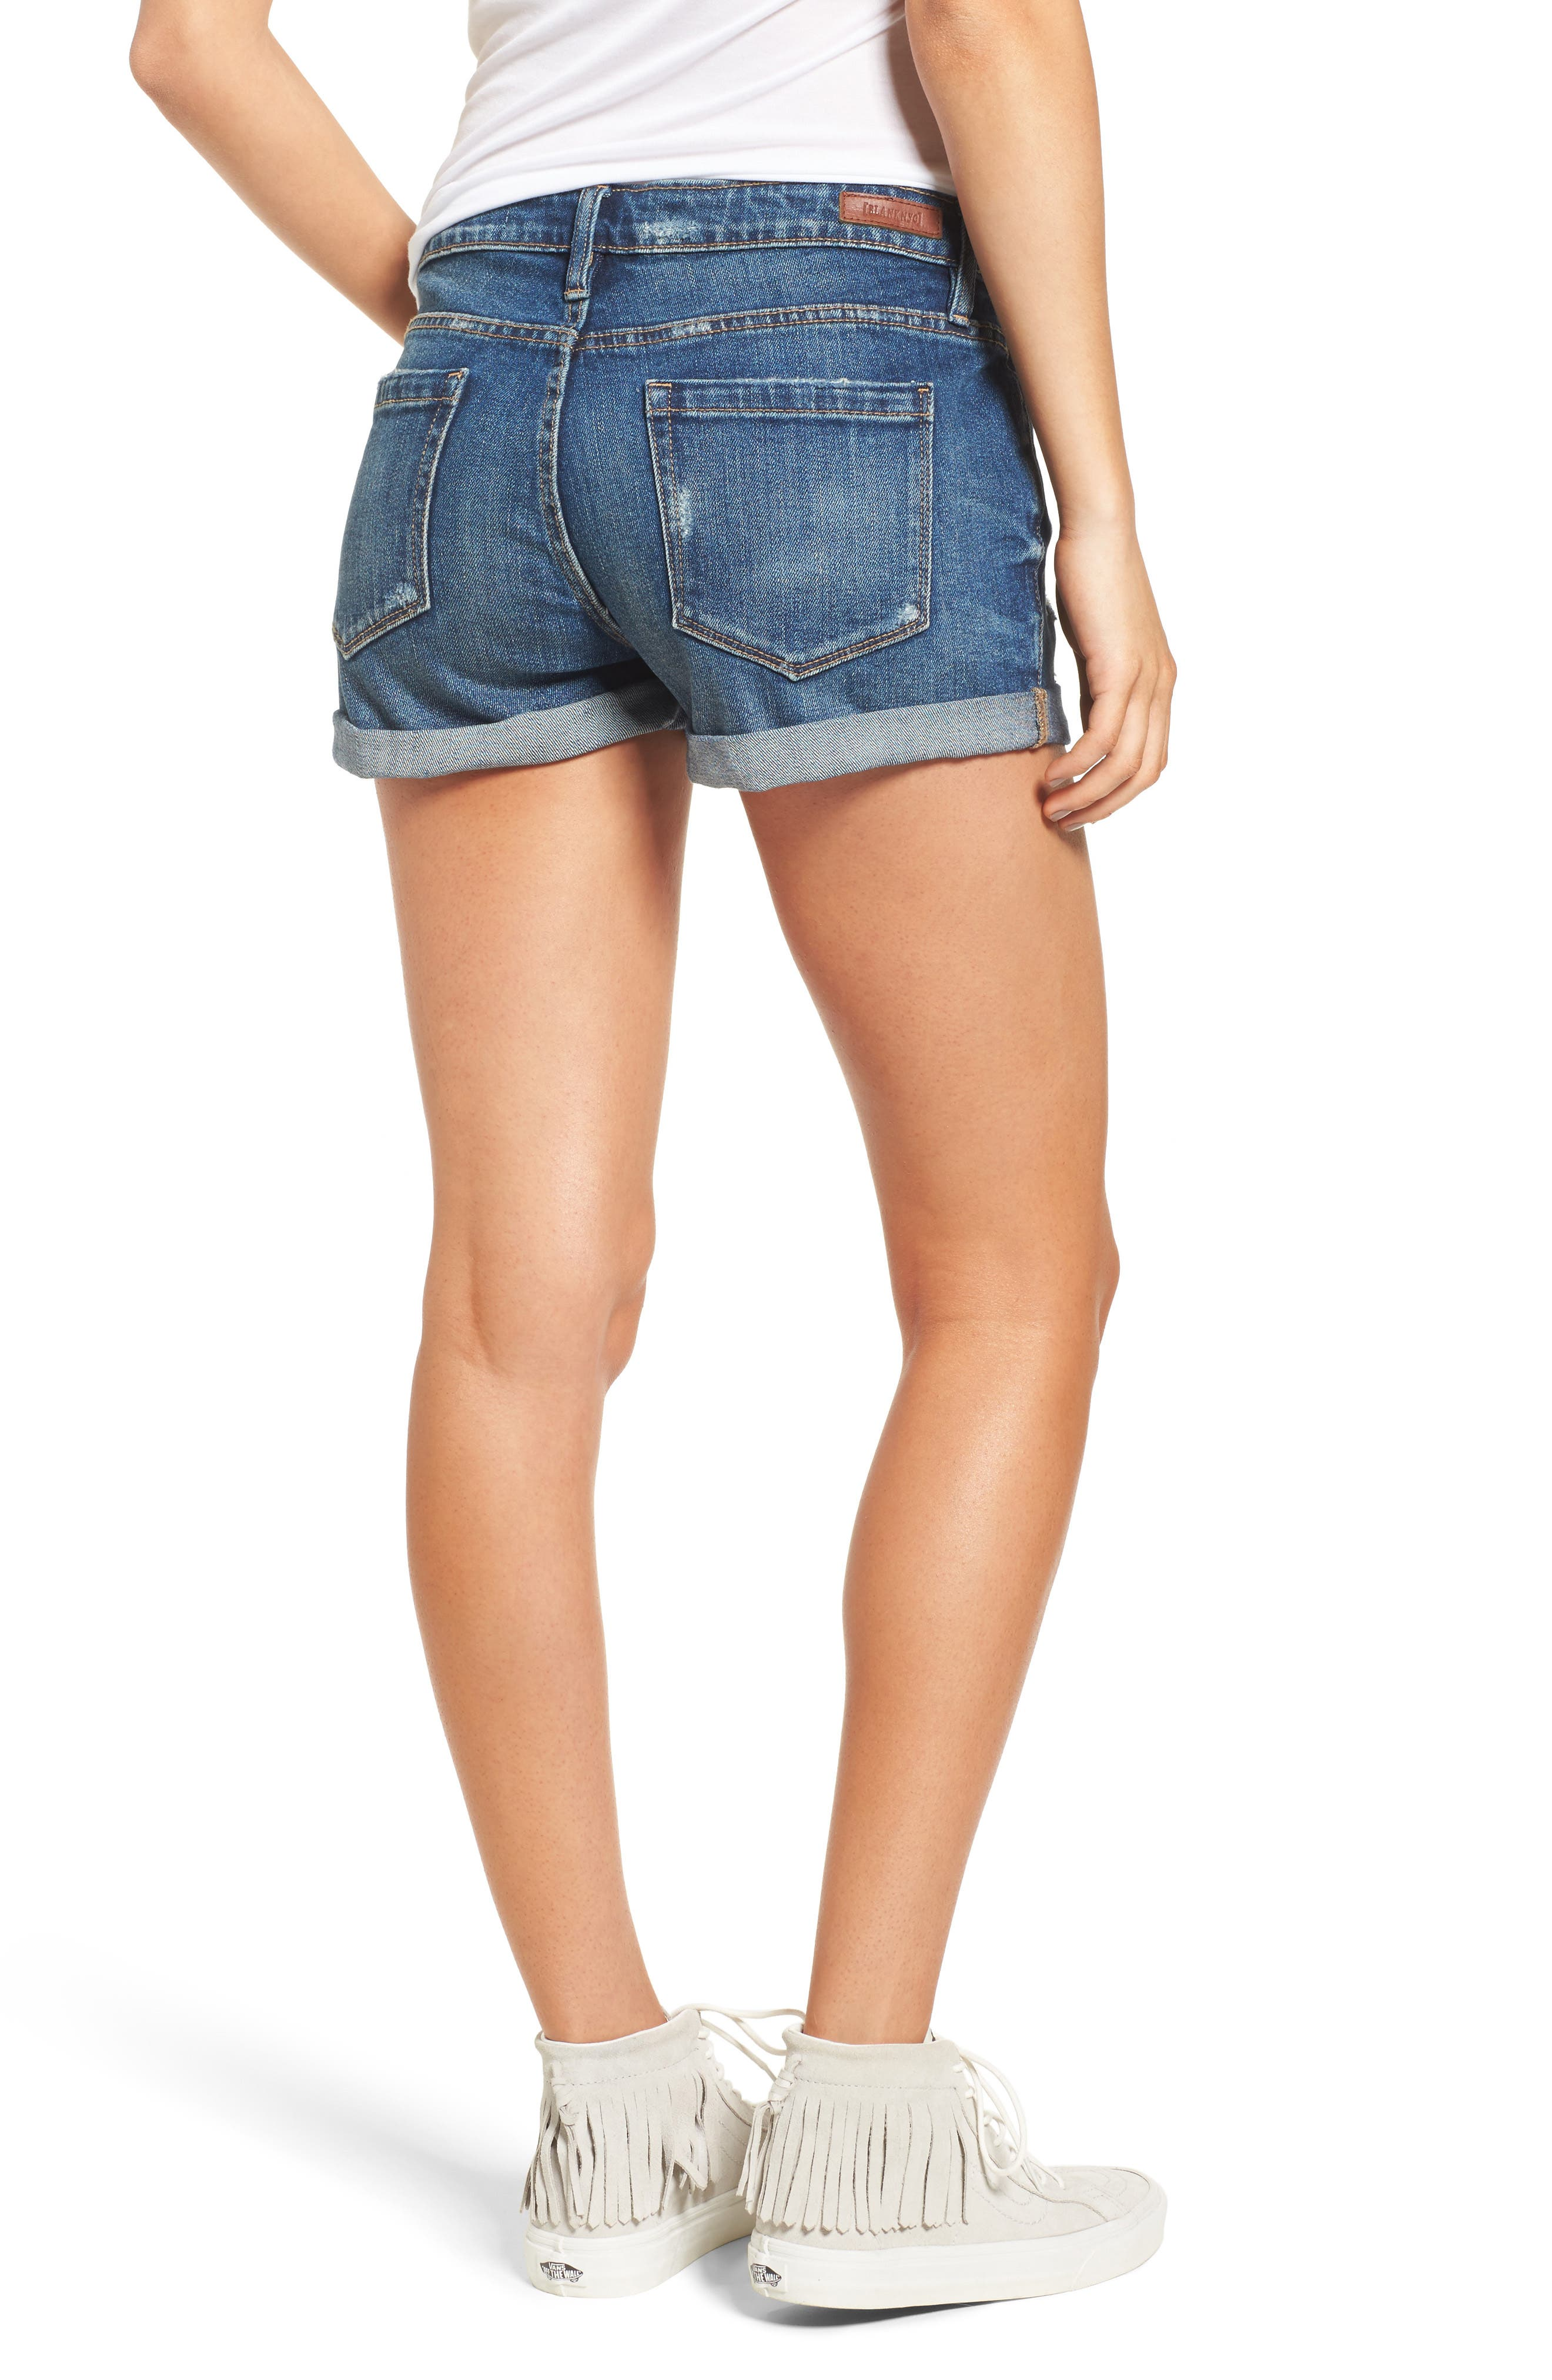 12 Best Jean Shorts for Adults